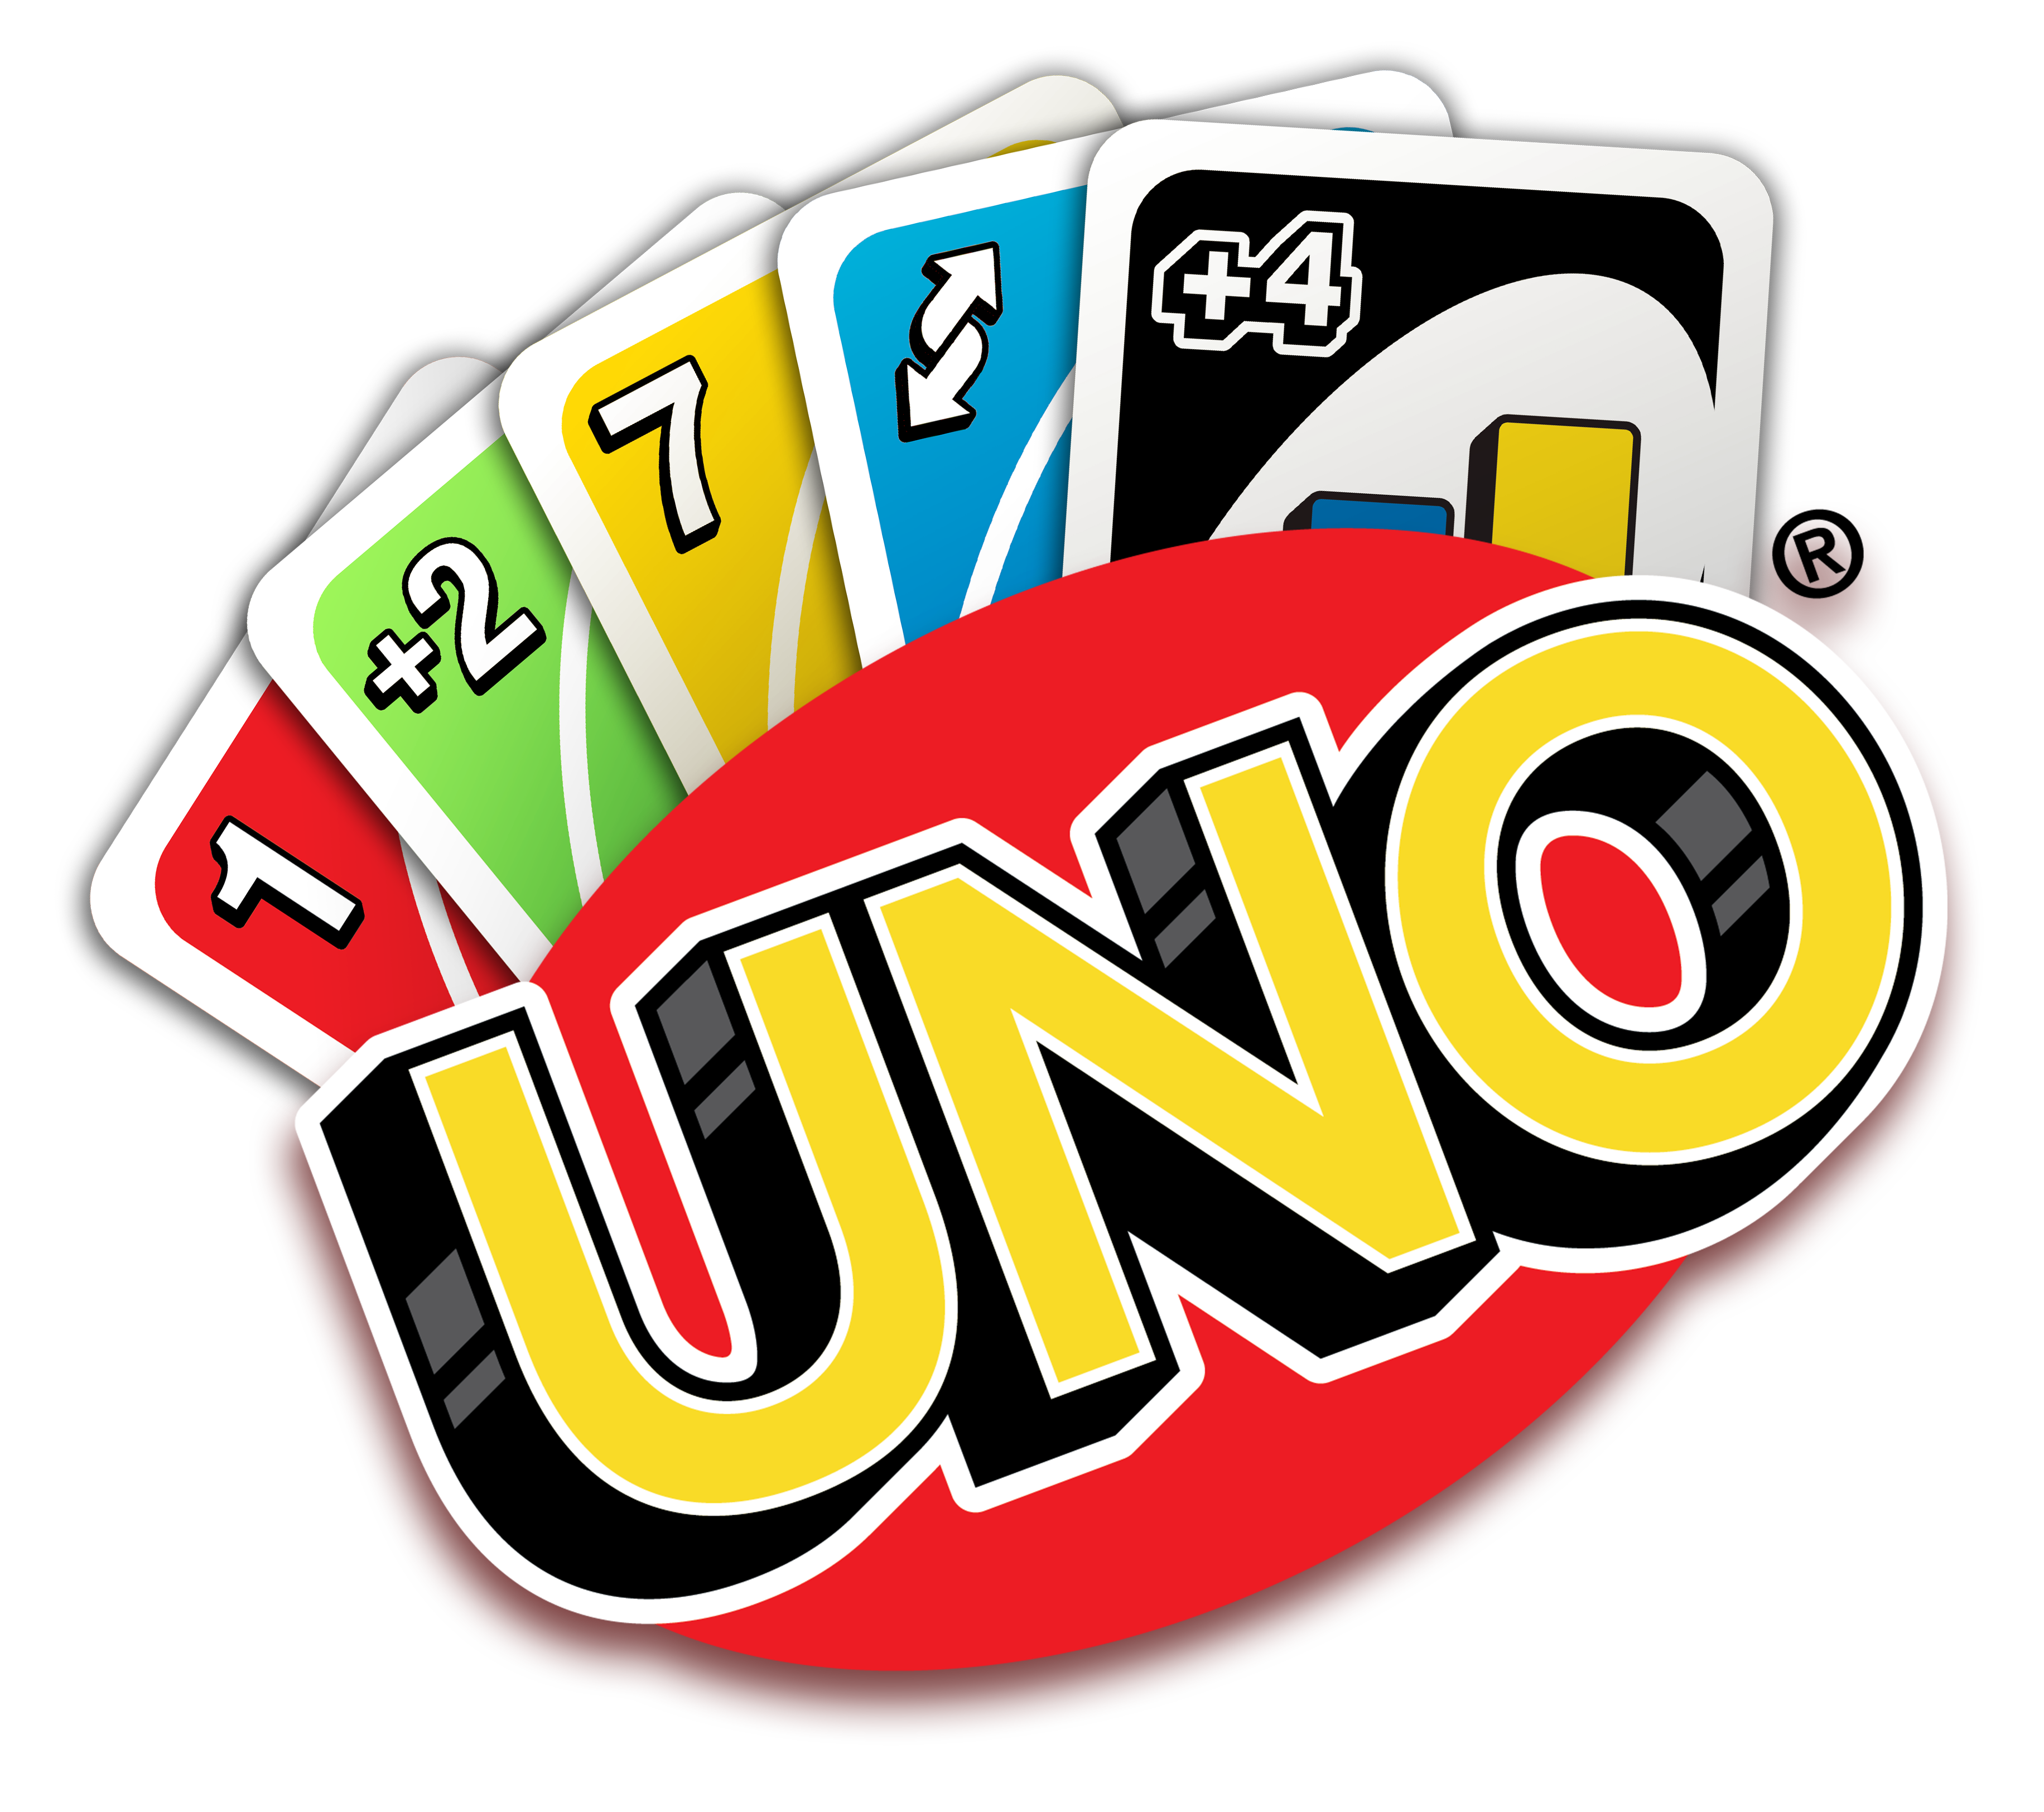 Download 10 Emblem Area Onecard Phase Uno HQ PNG Image